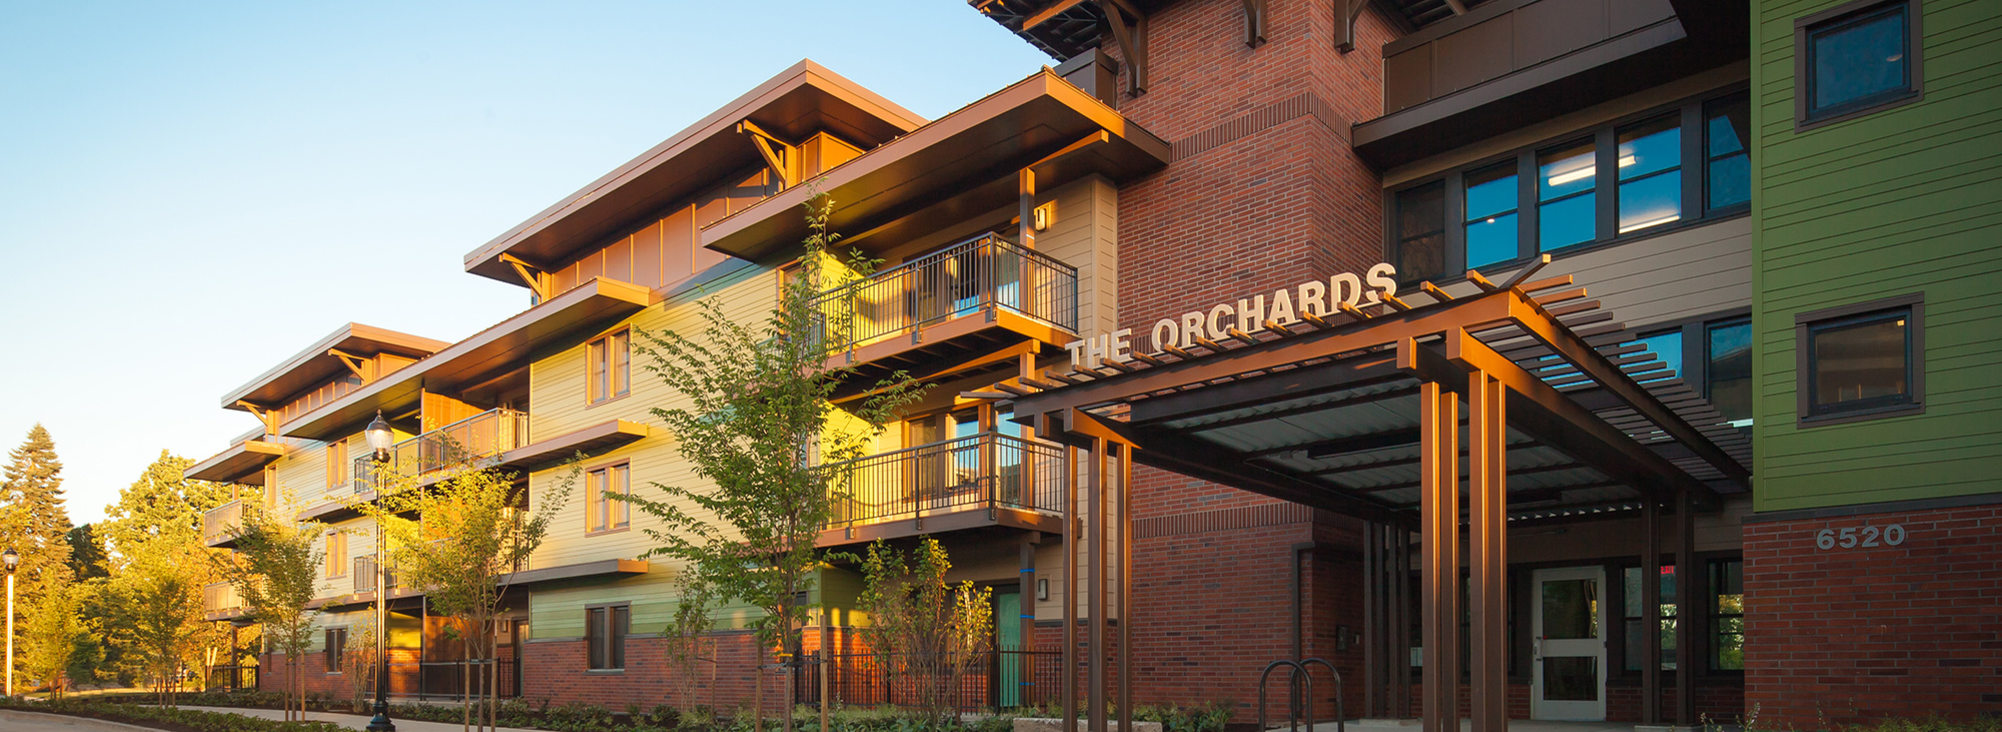 Orchards at Orenco I apartments in Hillsboro